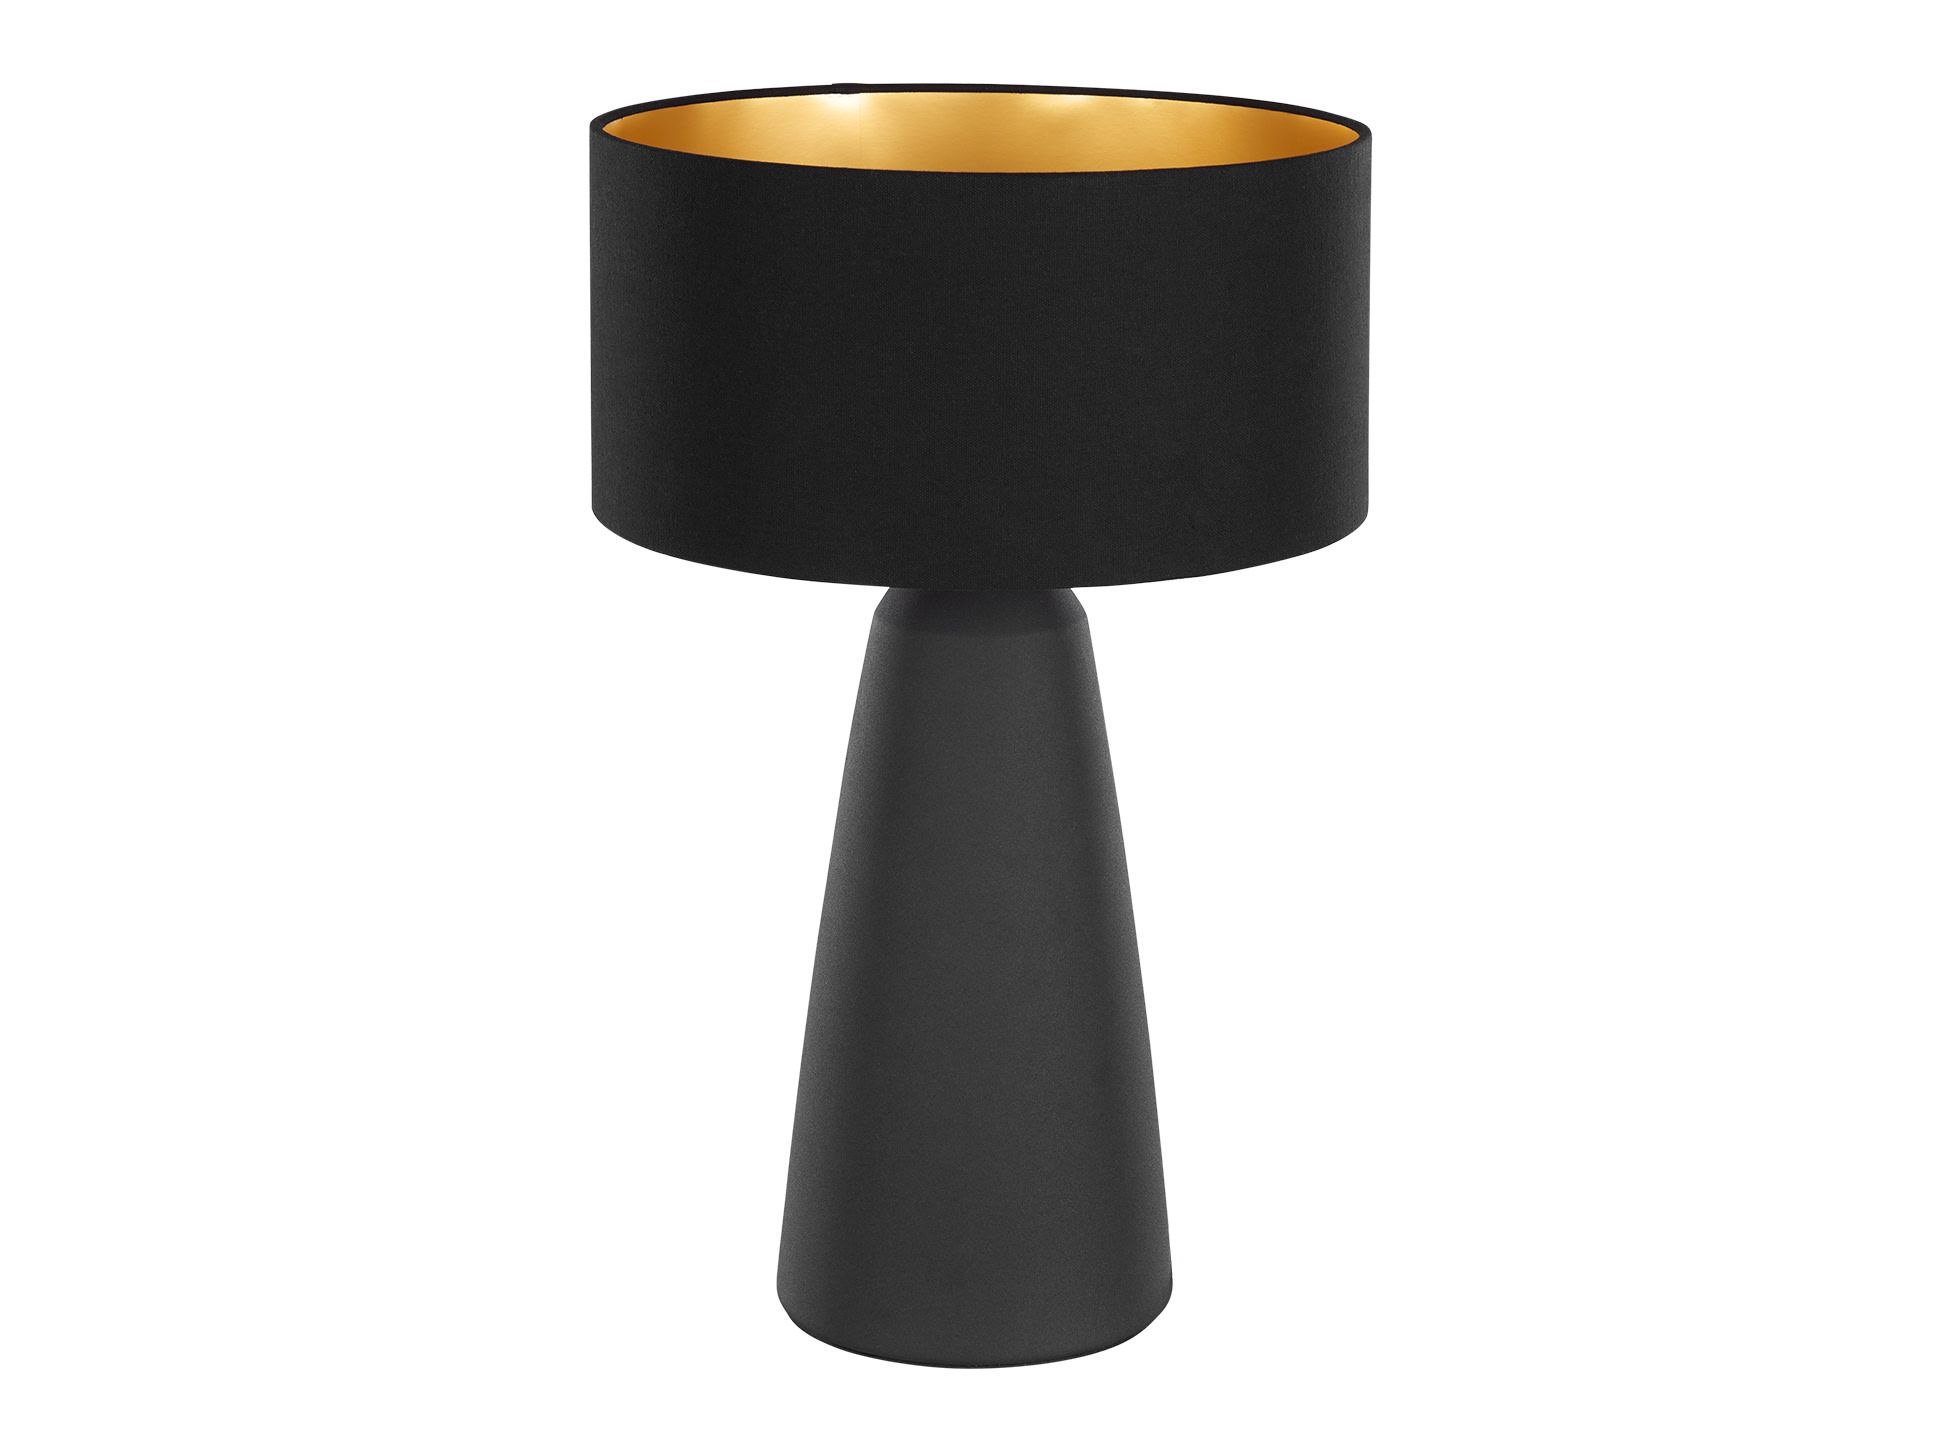 made metal table lamp black gold express delivery cotton vera table lamps collection from. Black Bedroom Furniture Sets. Home Design Ideas